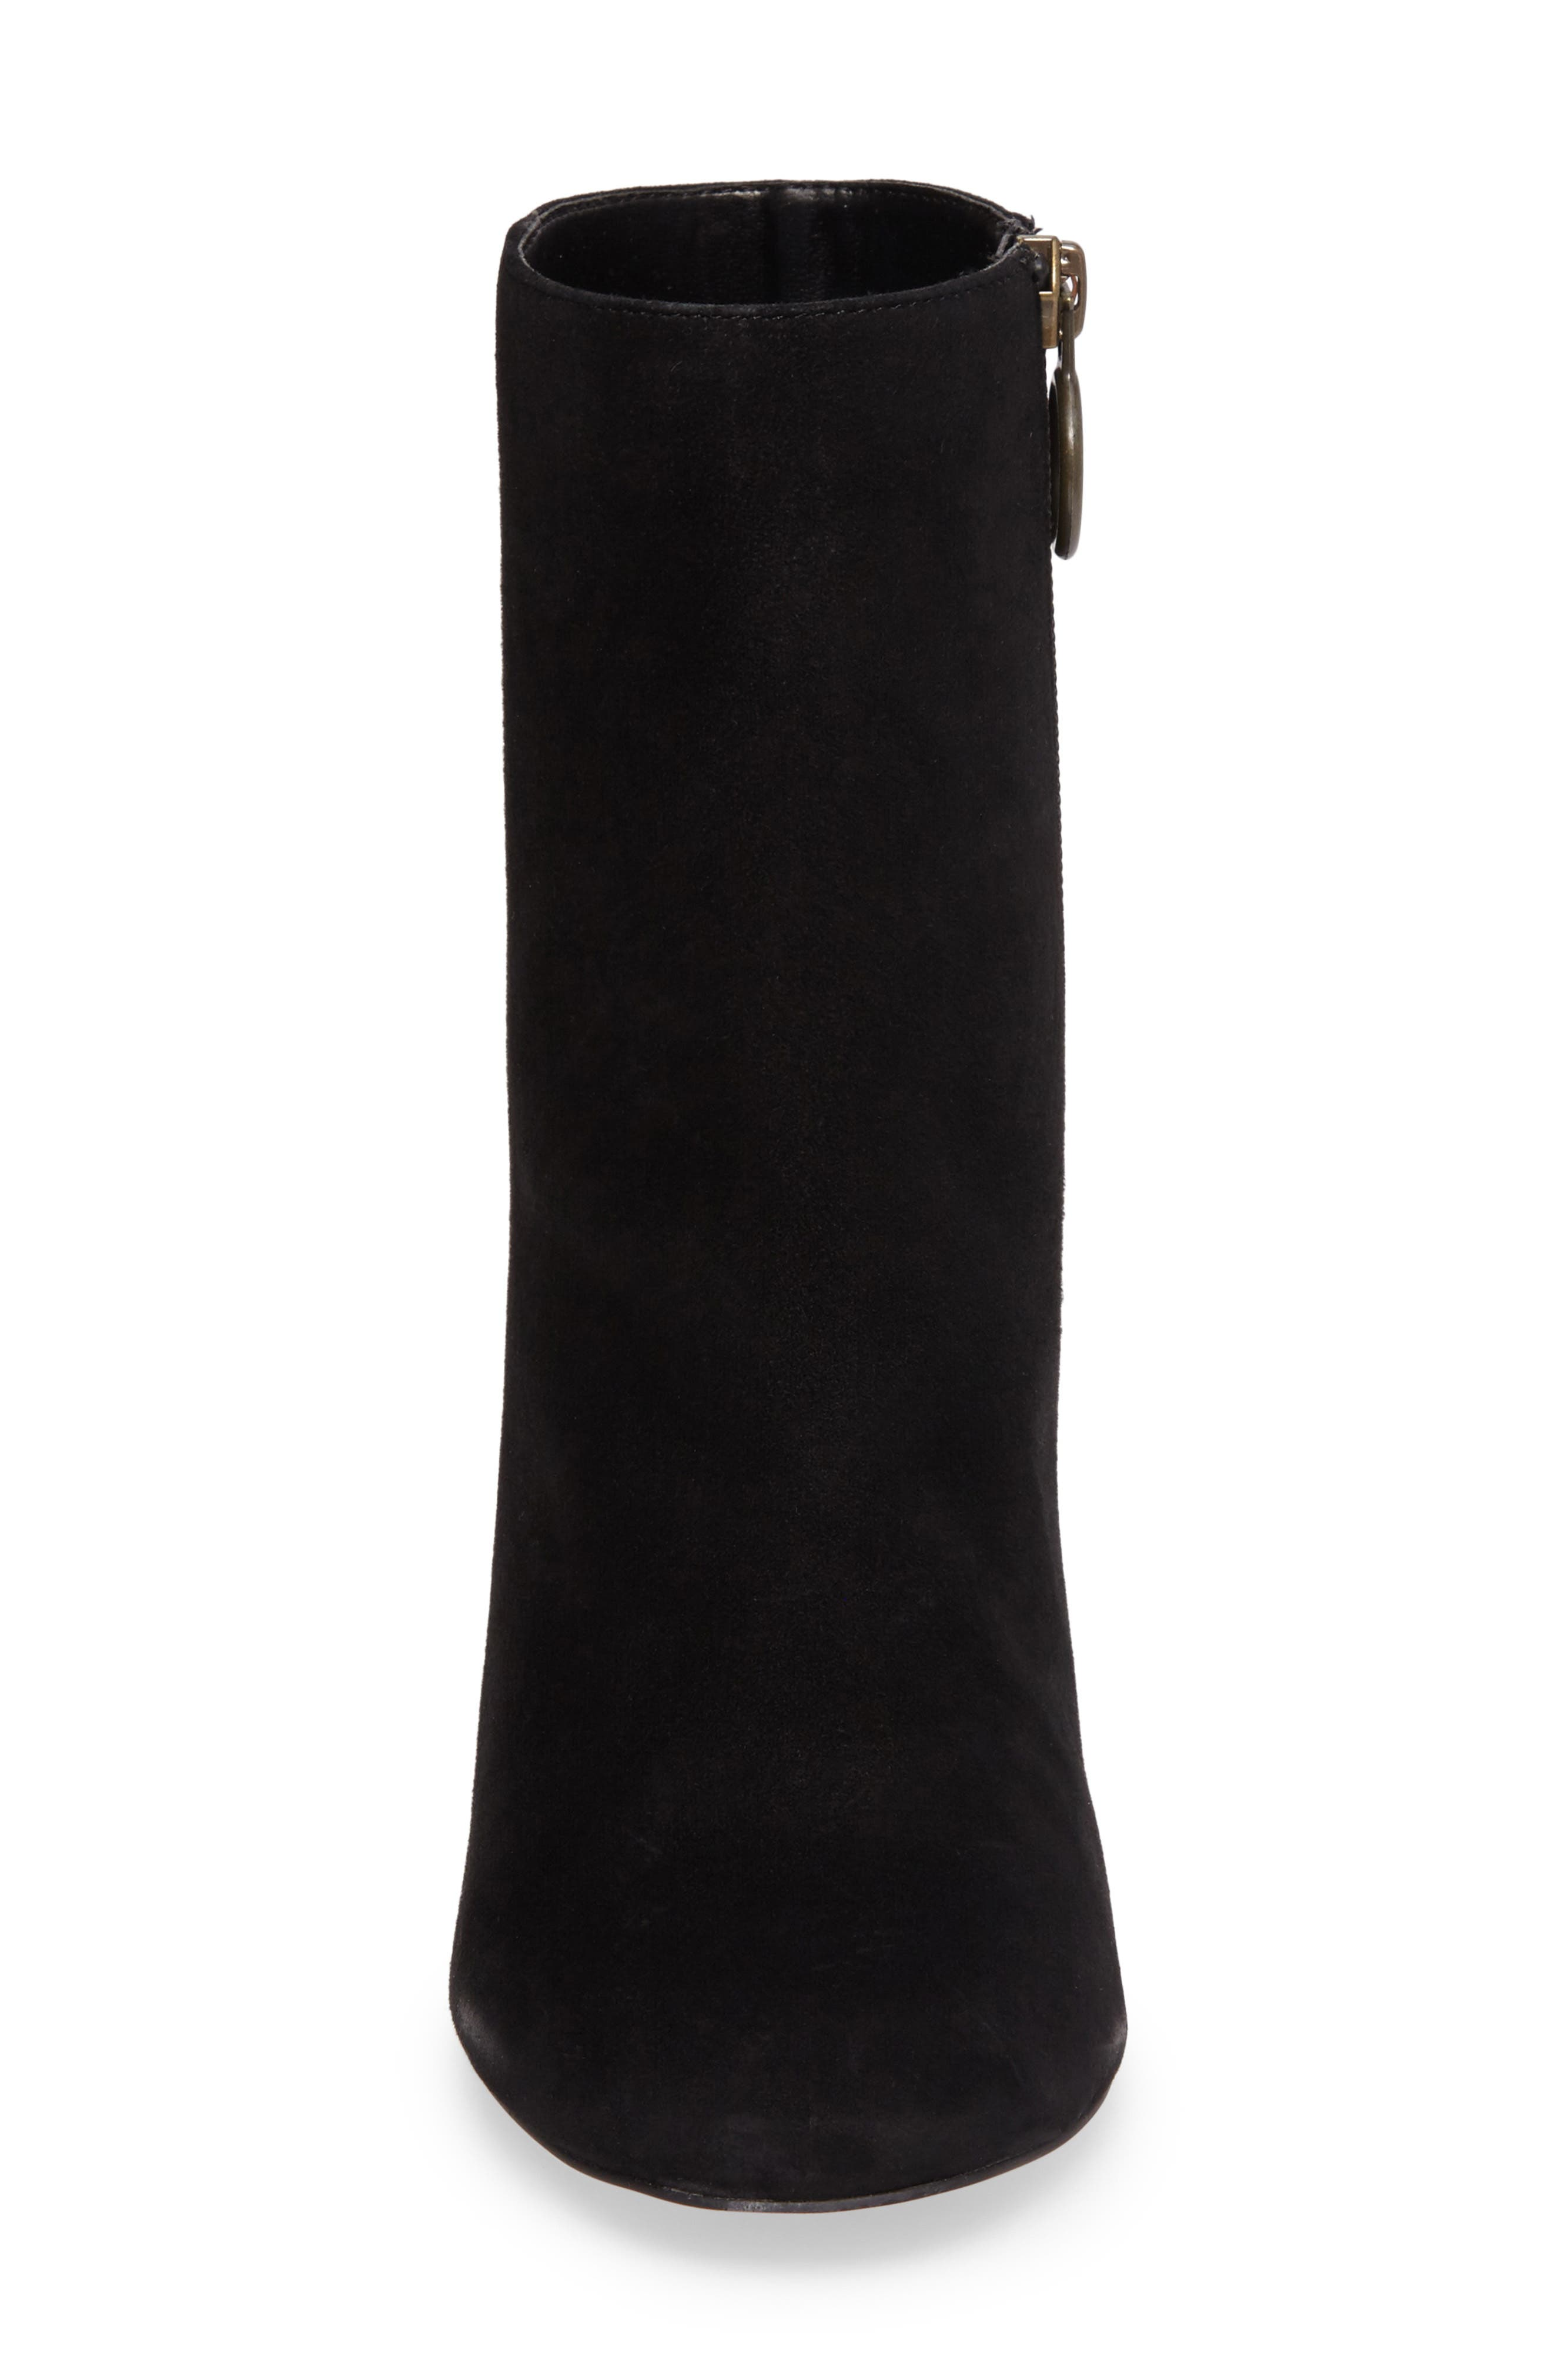 Mulholland Embroidered Boot,                             Alternate thumbnail 4, color,                             Black With Leopard Heel